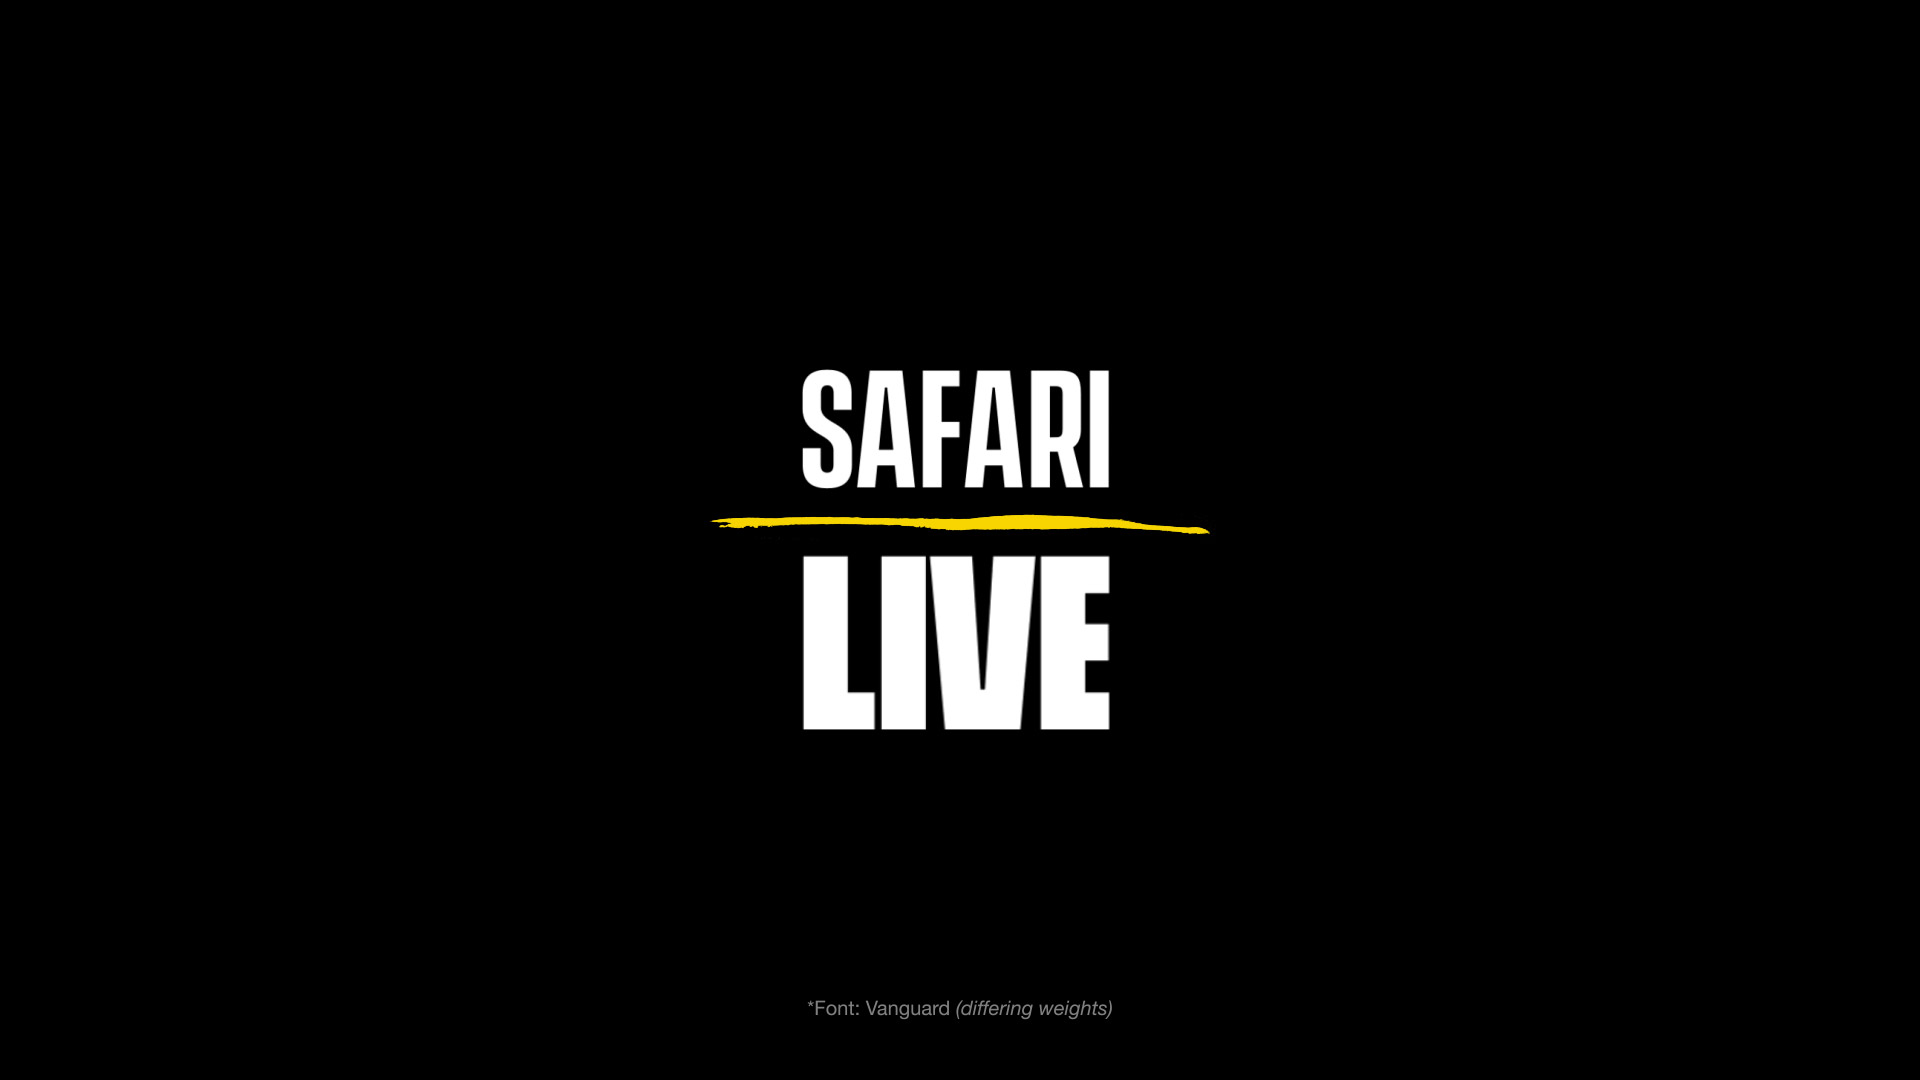 NAT_GEO_SAFARI_LIVE_INITIAL_CONCEPTS_16TH_OCT_17-12